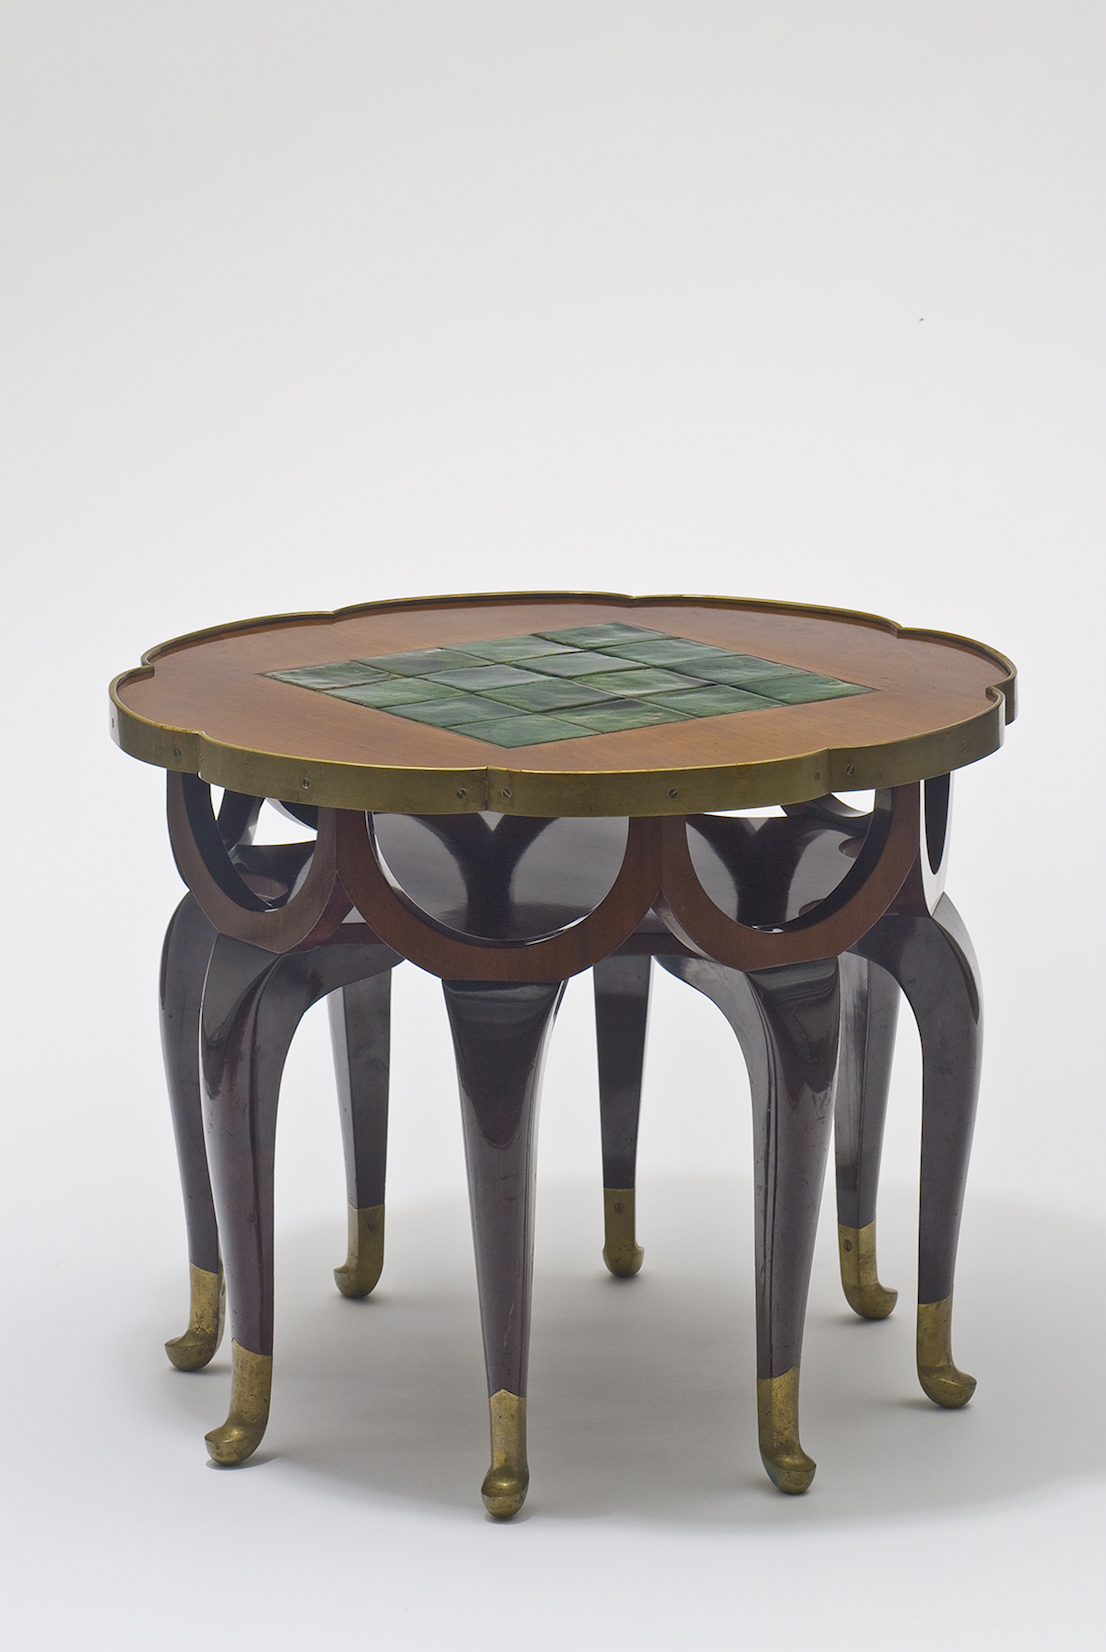 Max Schmidt and foreman Berka table for the Turnowsky apartment decorated by Adolf Loos, 1900 © MAK/Georg Mayer